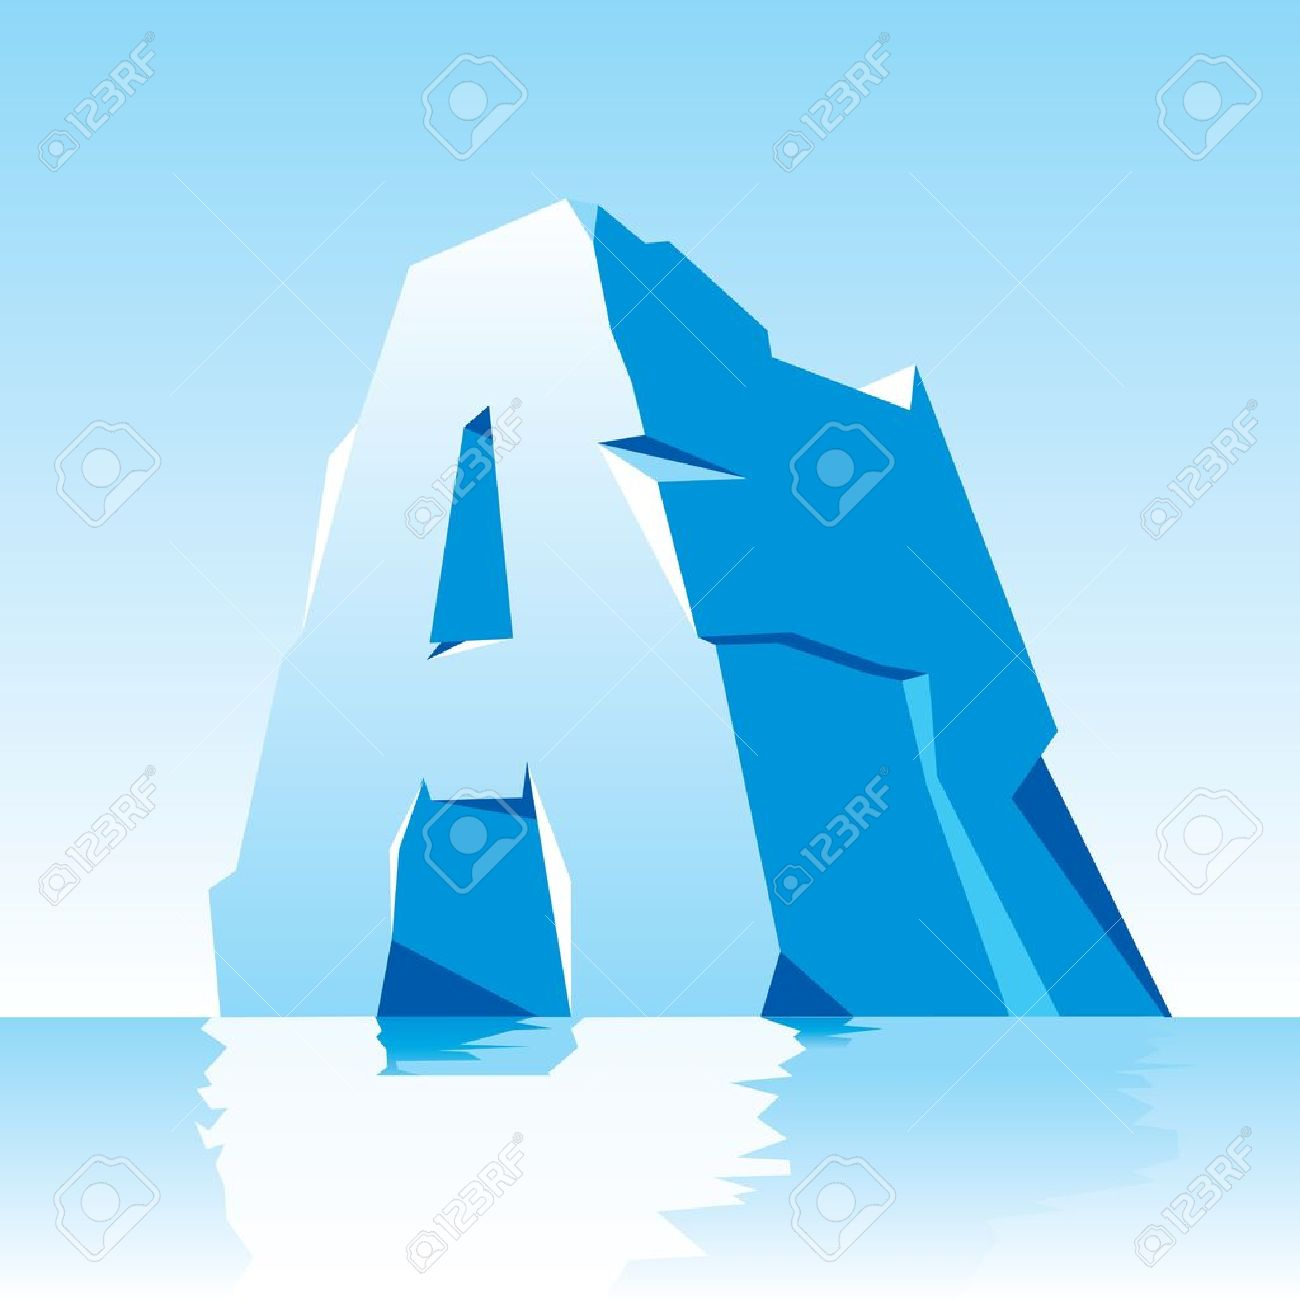 vector image of ice letter A Stock Vector - 16332281